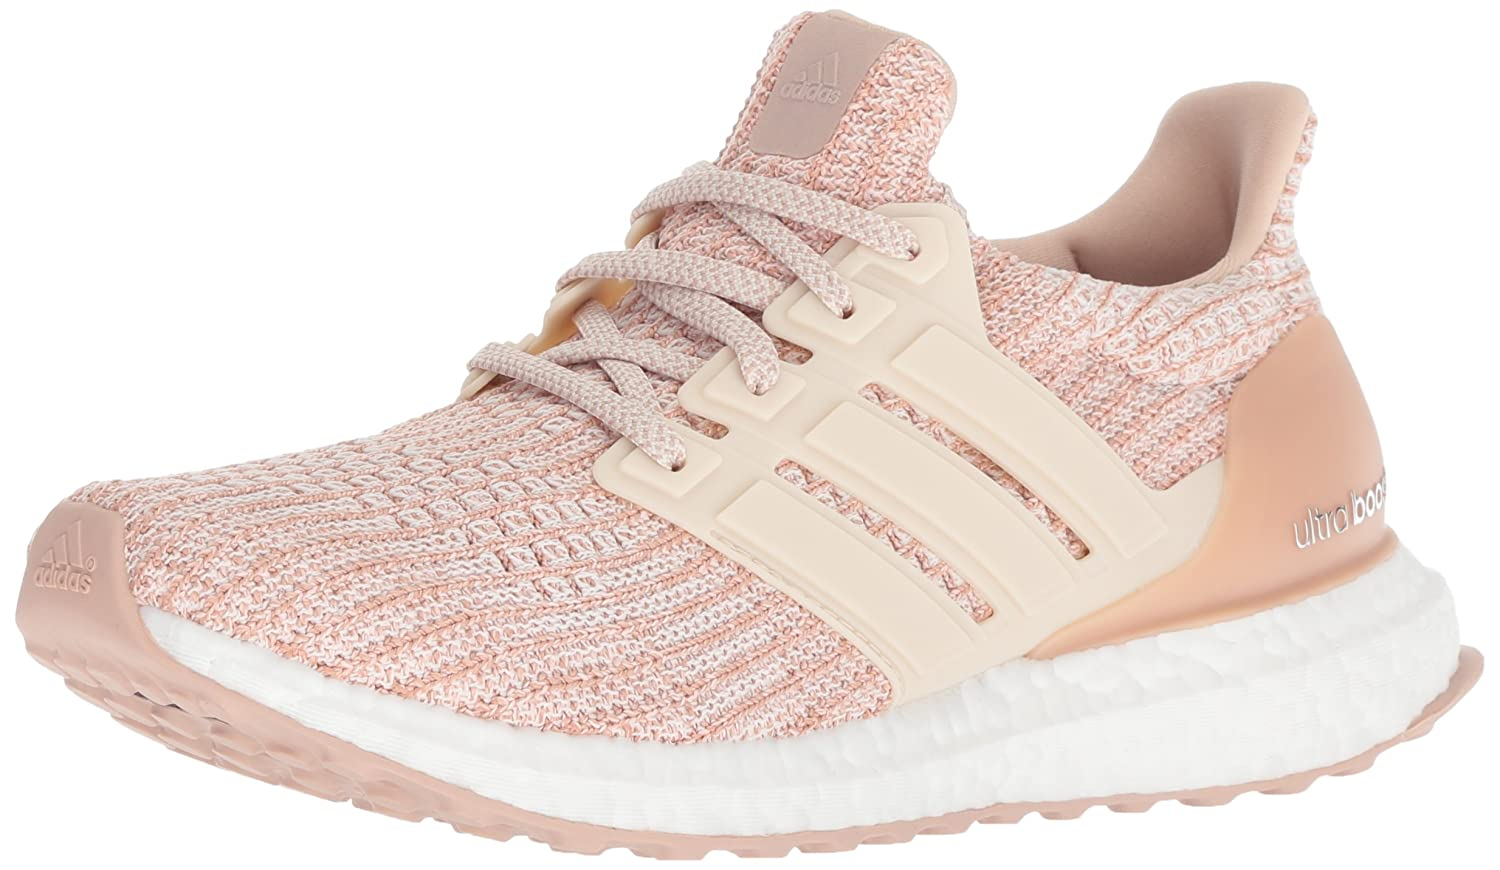 adidas Originals Women's Ultraboost B0778W5L9H 8.5 B(M) US|Ash Pearl/Linen/Clear Orange